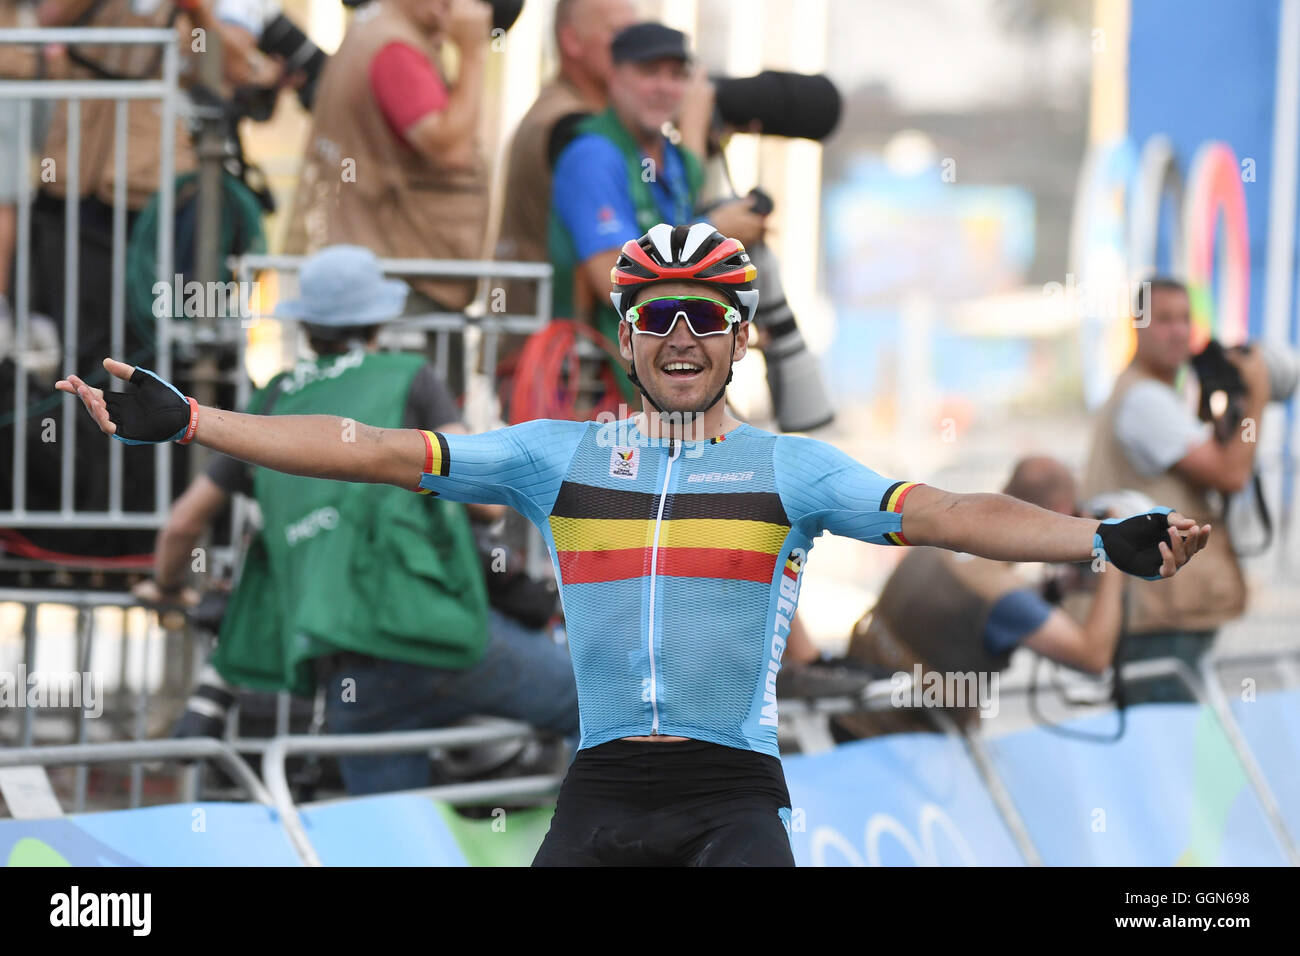 Greg van Avermaet of Belgium celebrates after winning the Gold Medal in the  Men s Road Race of the Cycling Road event during the Rio 2016 ... f5a02d557